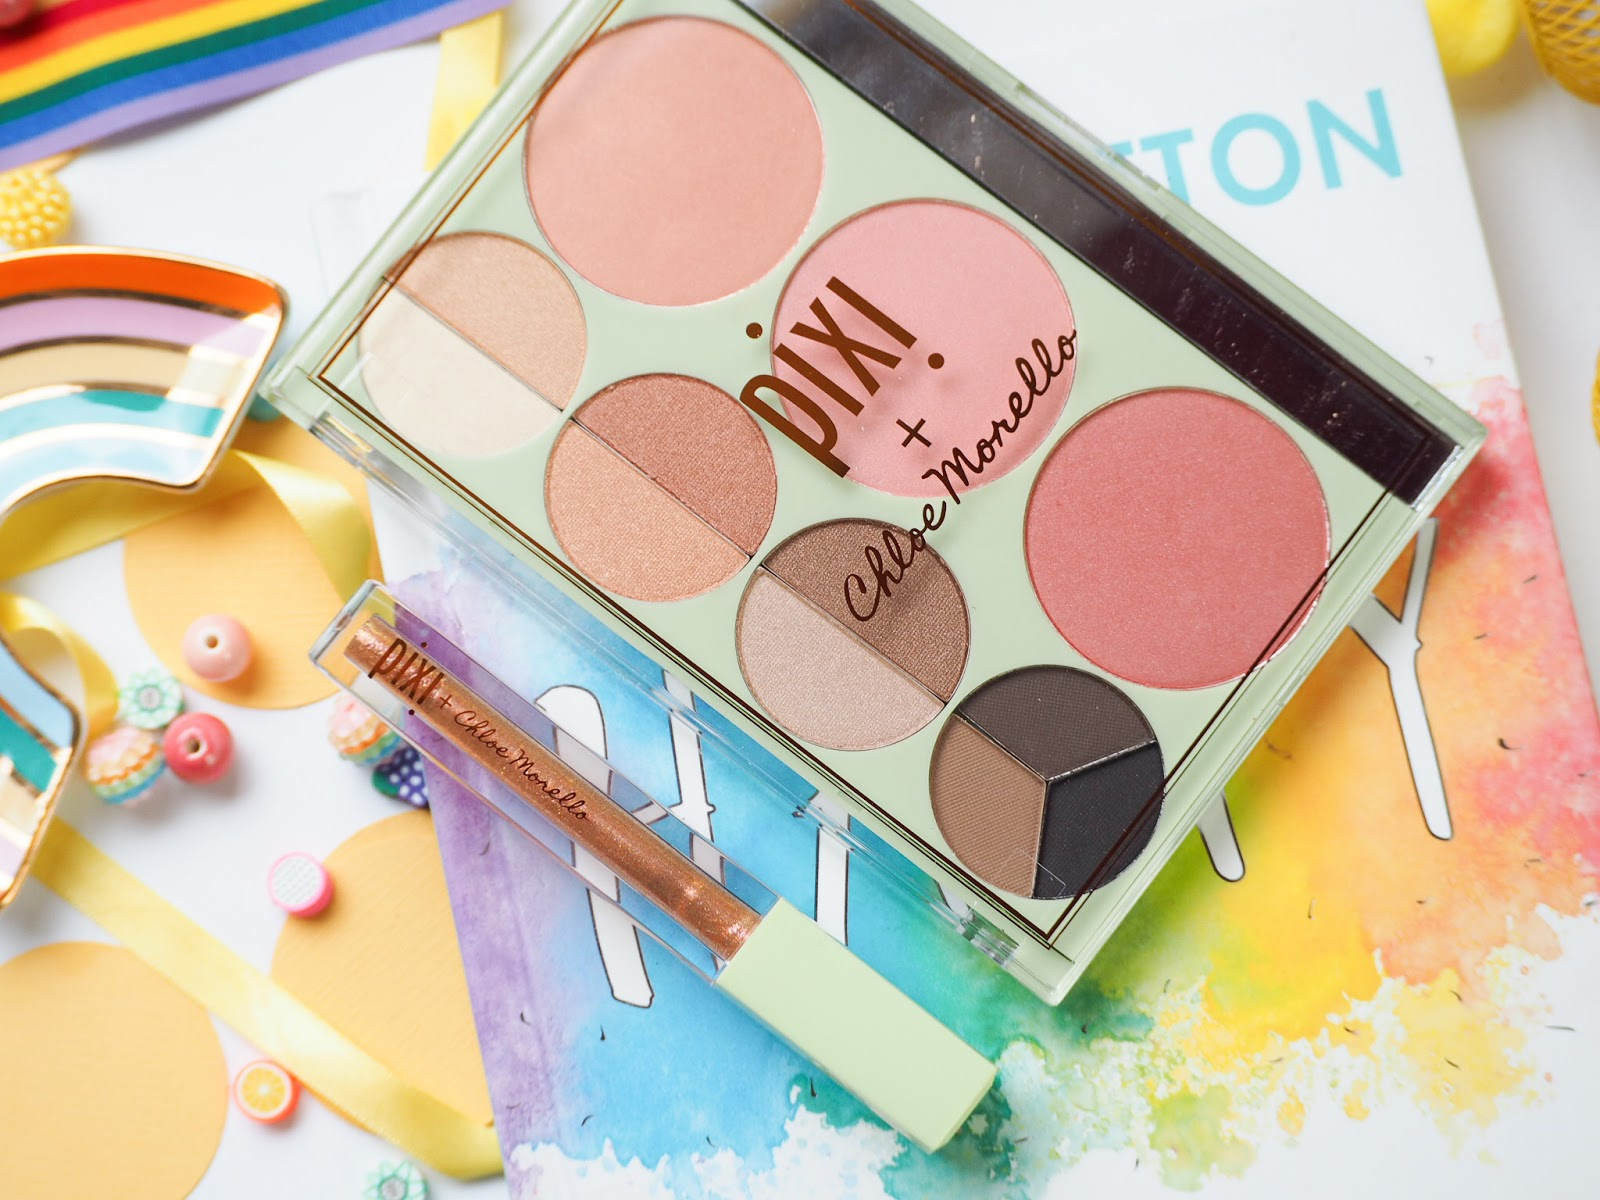 Pixi Pretties: The Latest Pixi + Influencer Collaborations!*